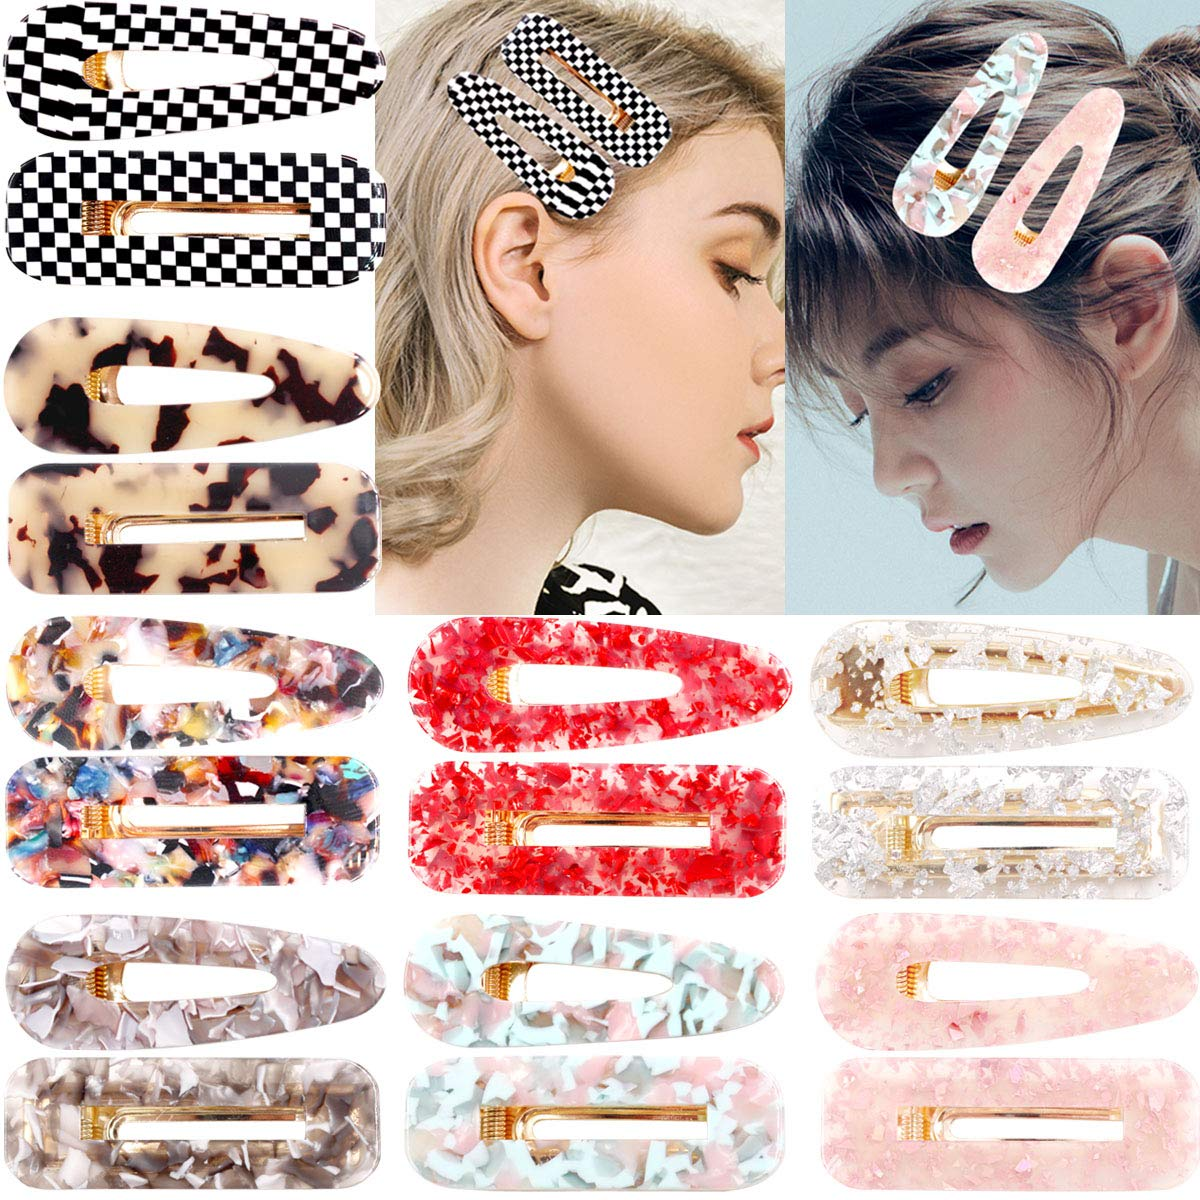 Top 9 Best Baby Hair Clips Reviews in 2020 7